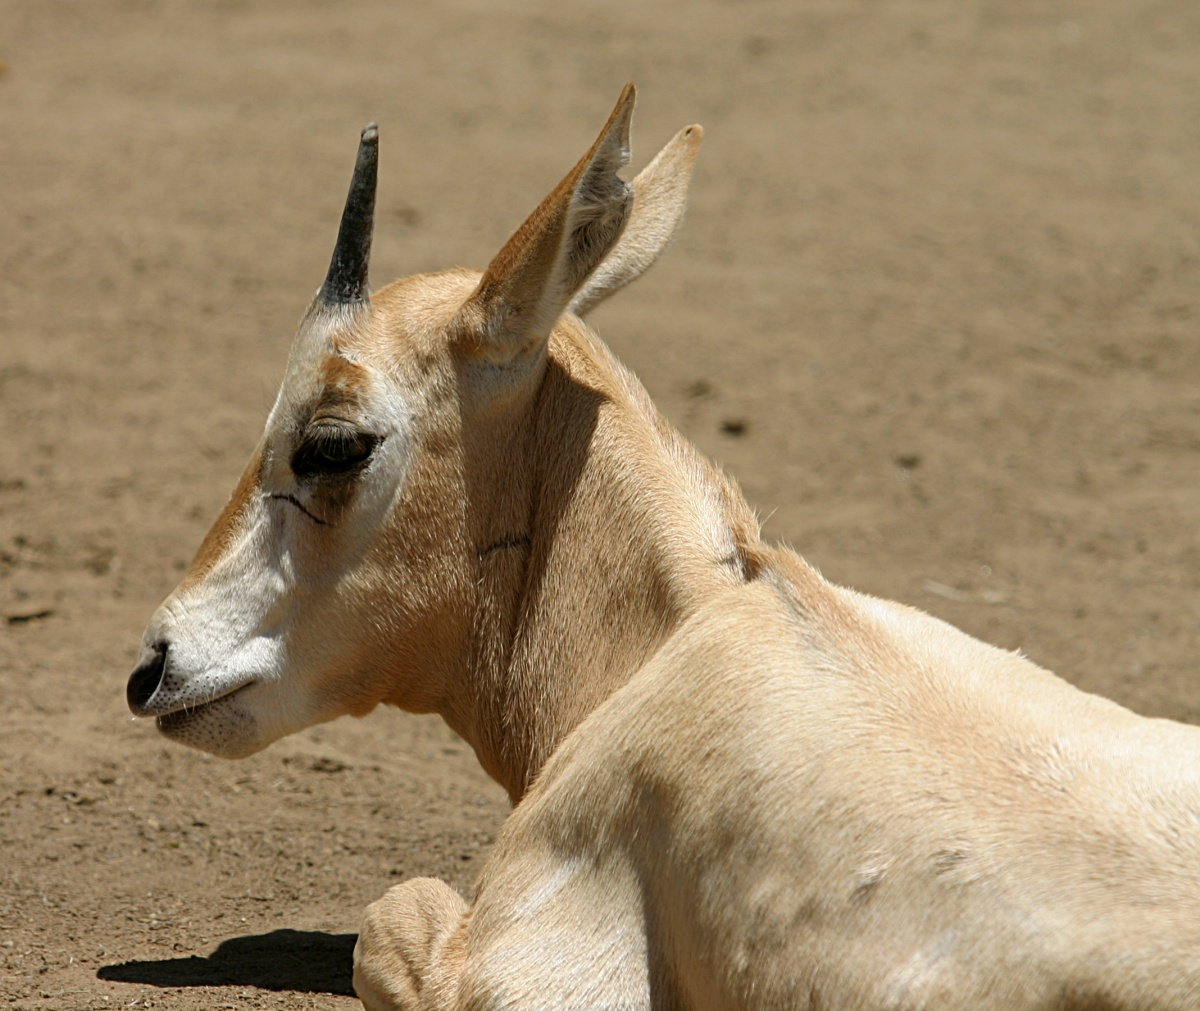 https://upload.wikimedia.org/wikipedia/commons/5/54/Scimitar-horned_Oryx.jpg